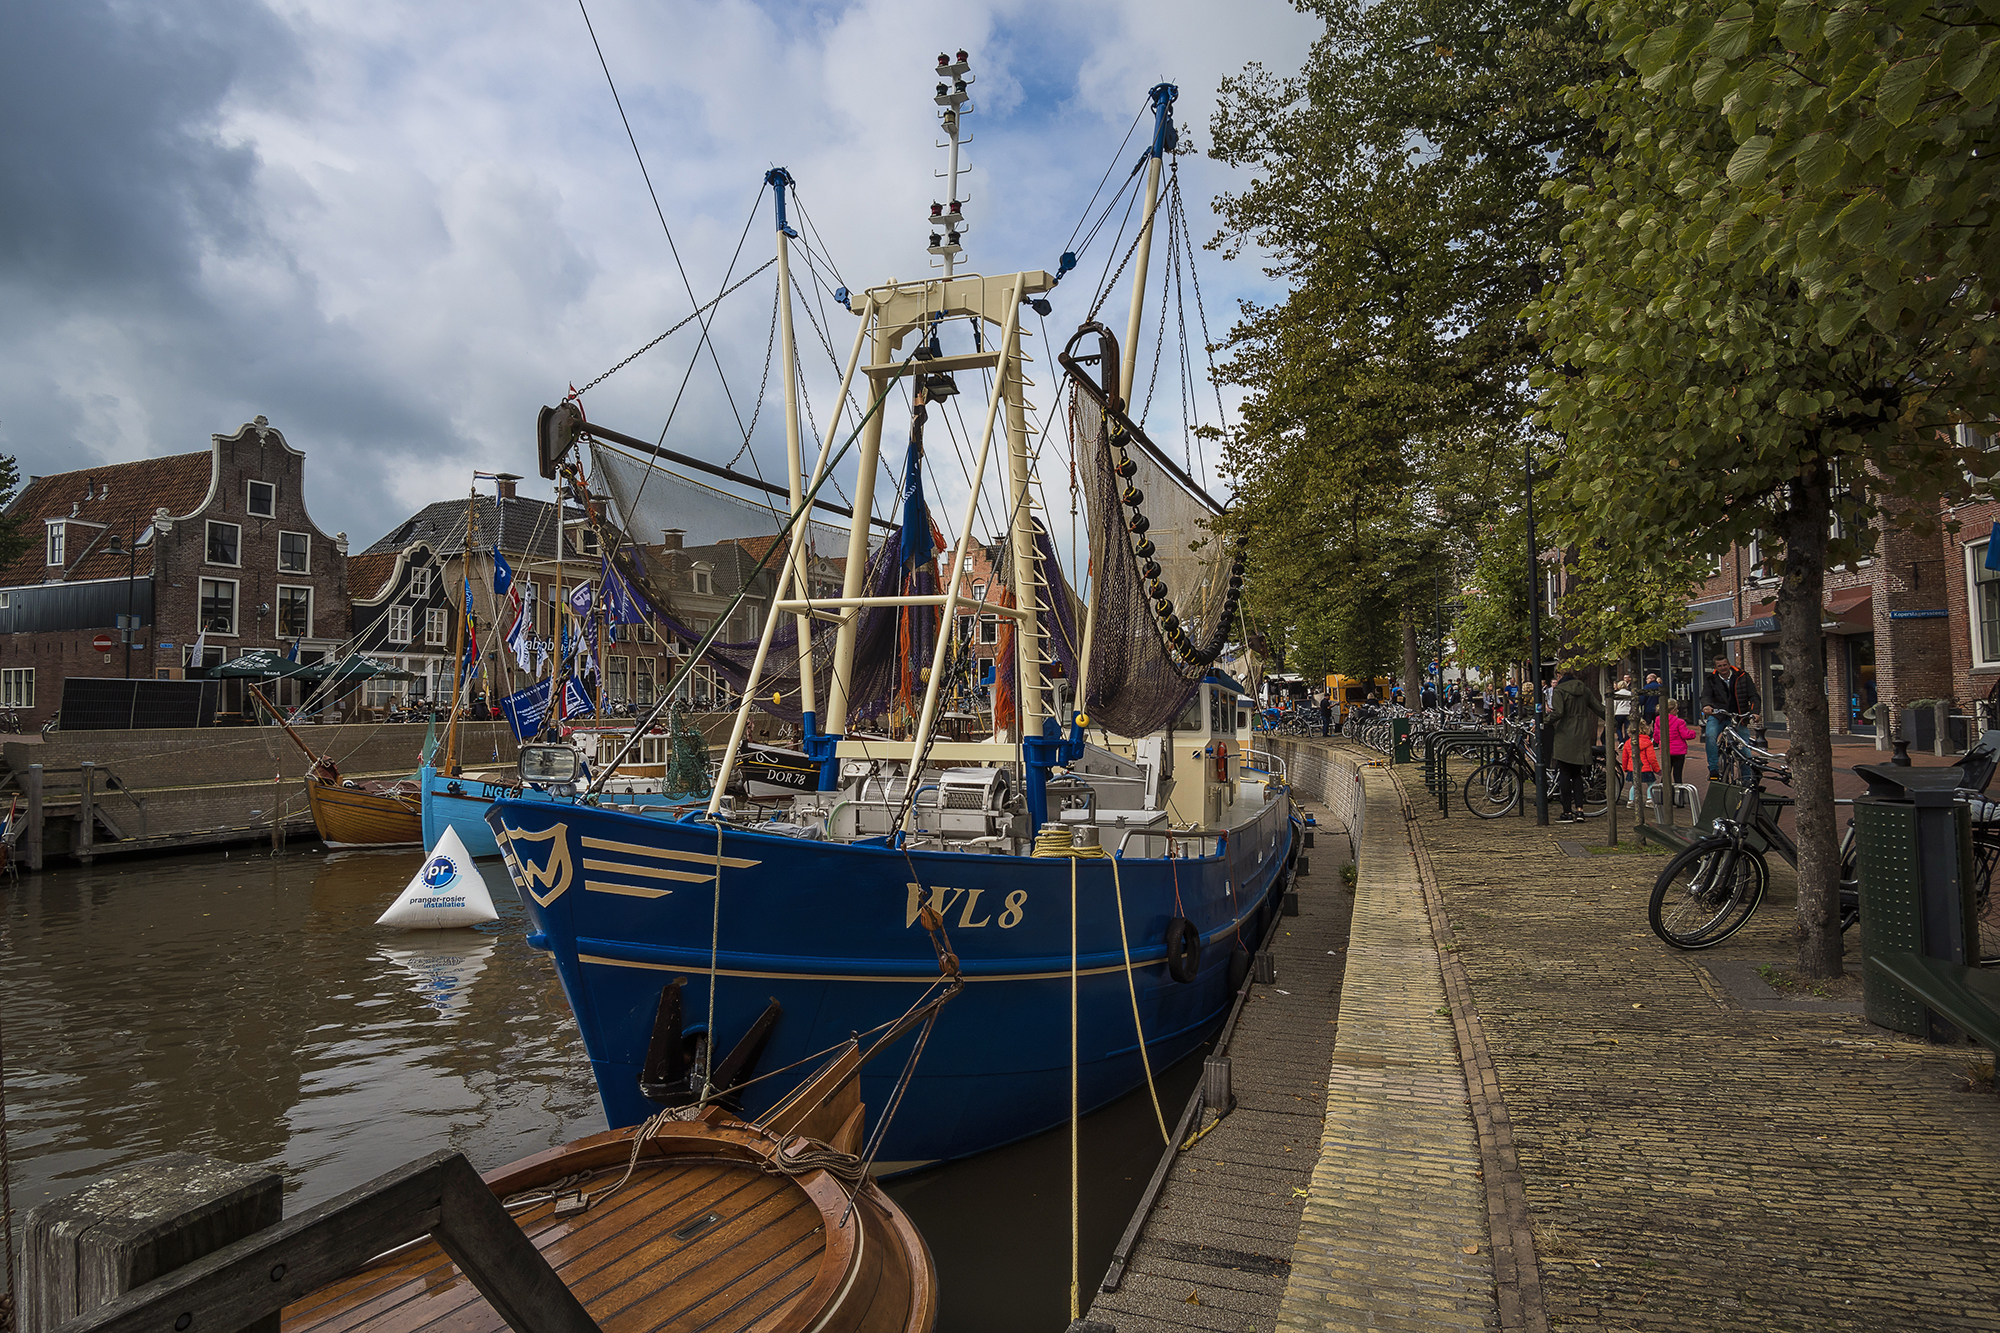 boats and ships in Dokkum, Netherlands